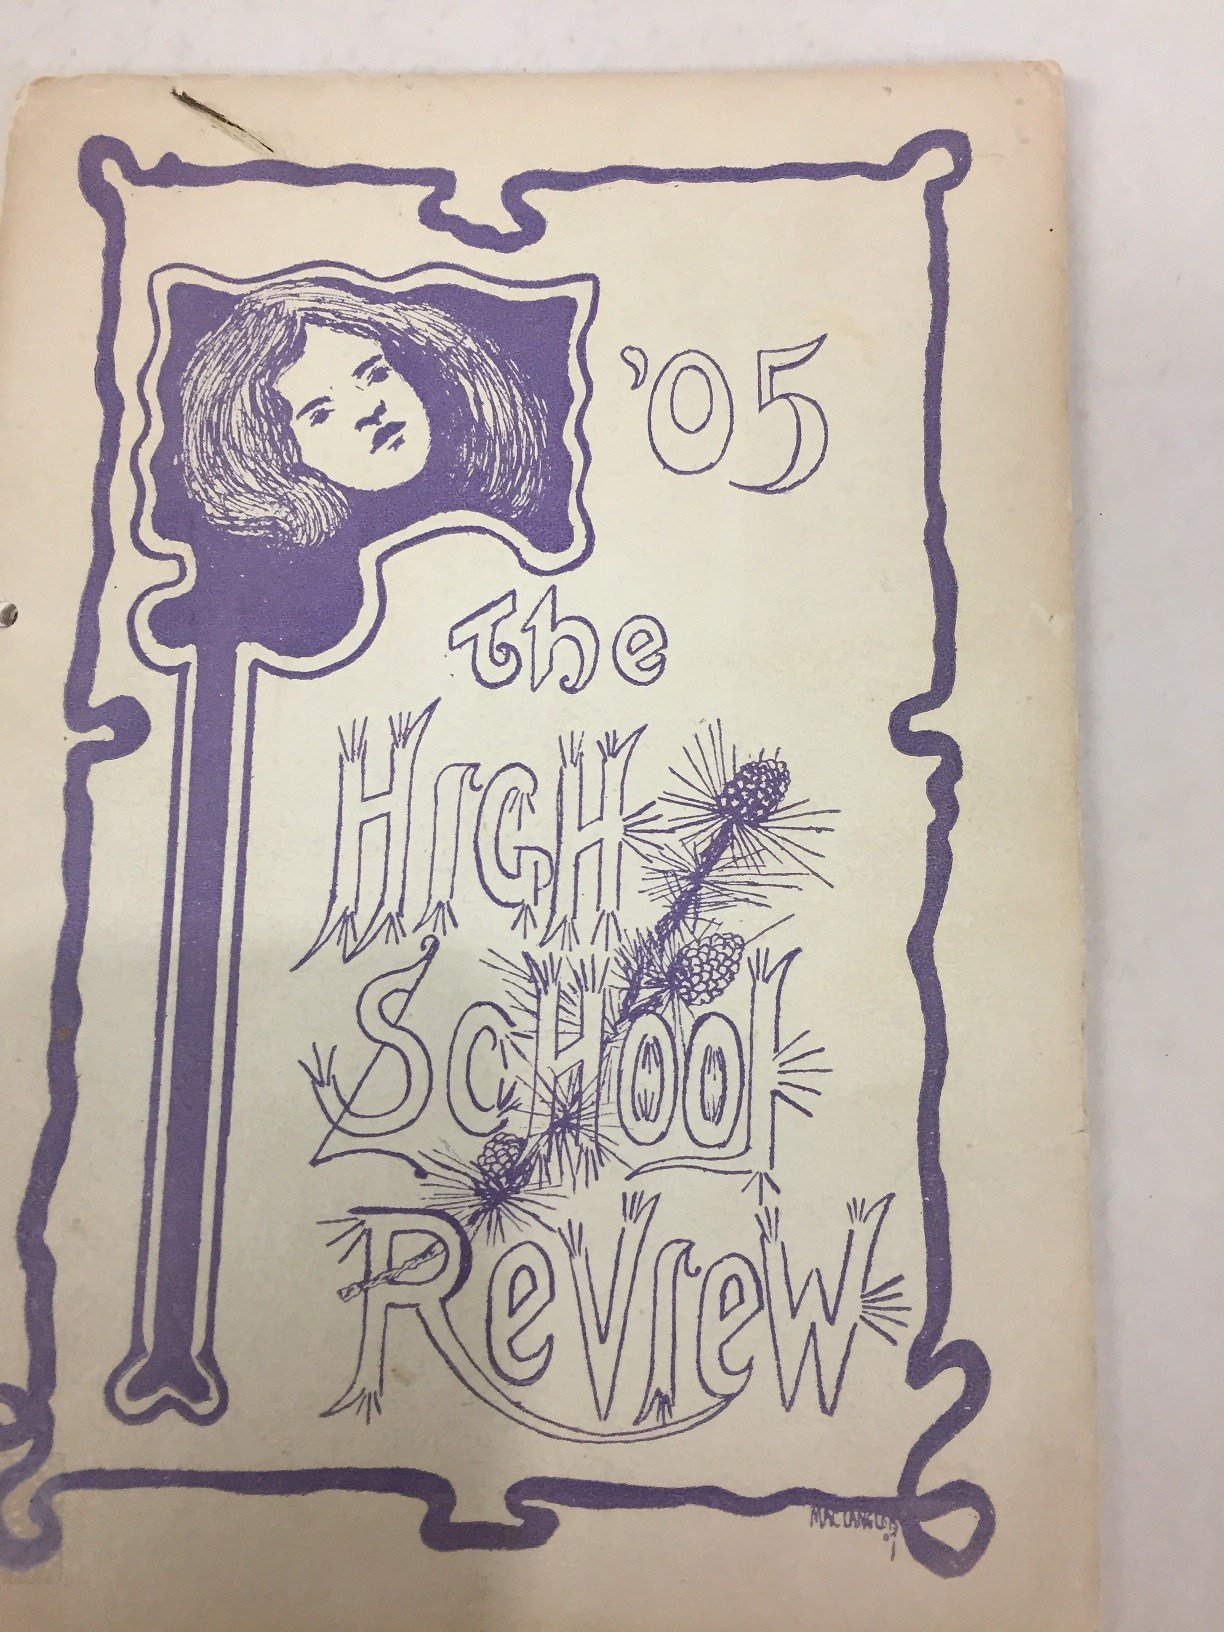 A preserved 1905 Santa Maria High School yearbook from the Santa Maria Historical Society.